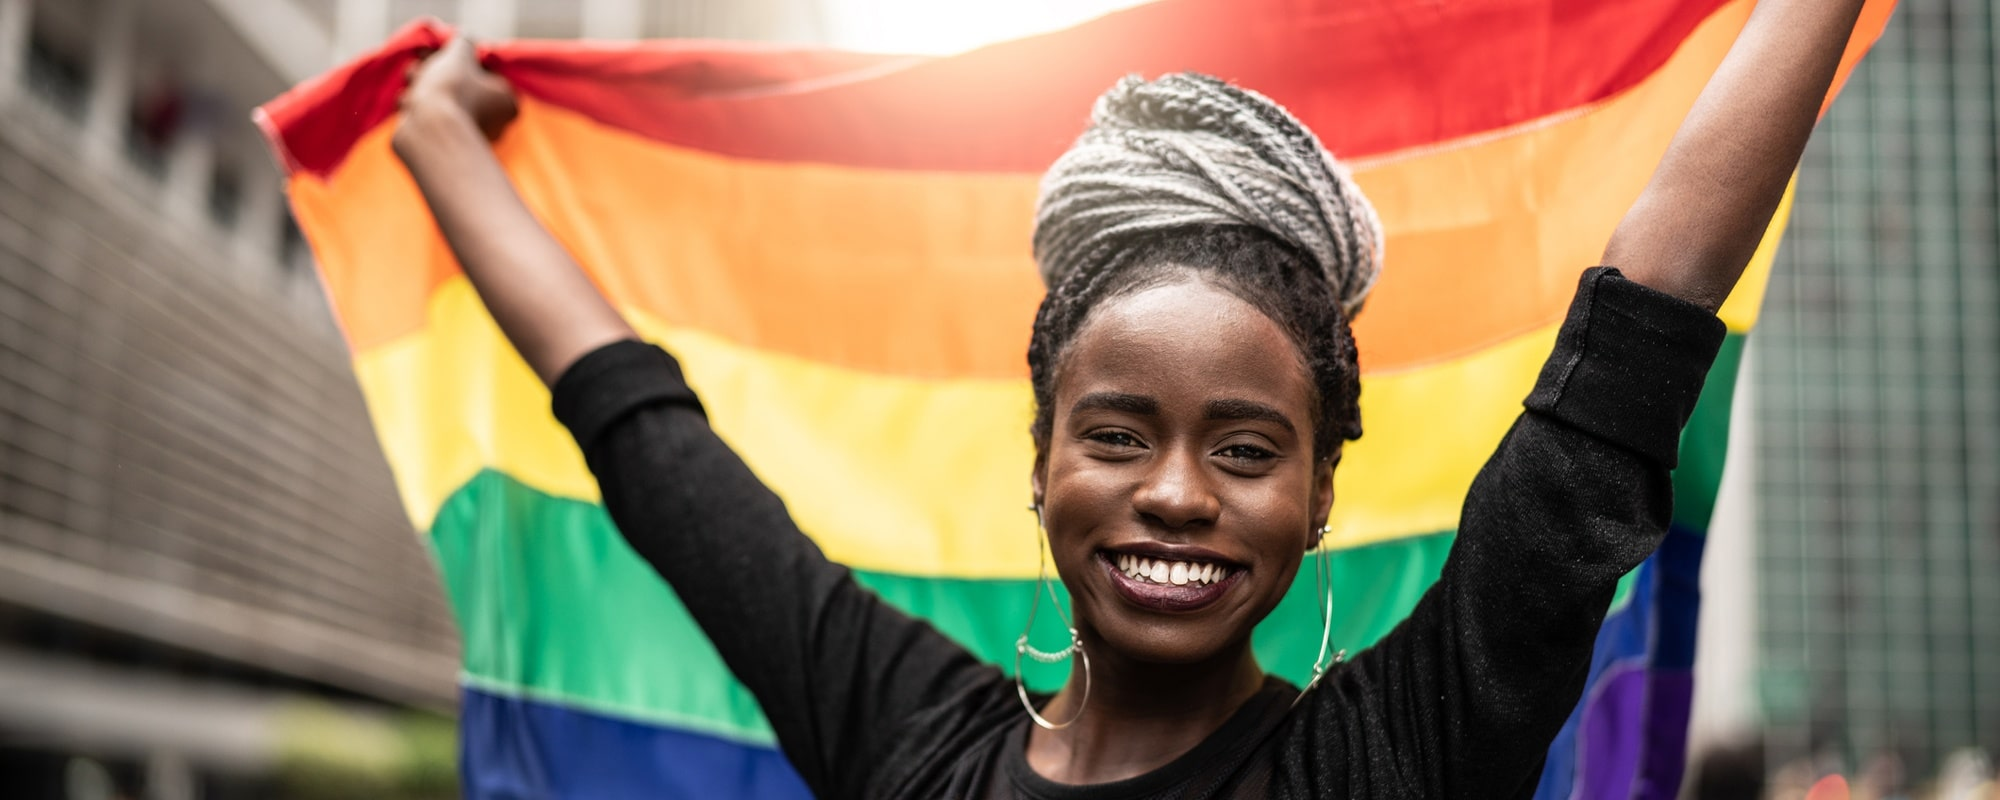 A cheerful woman holds up a rainbow flag in solidarity with Pride Month.